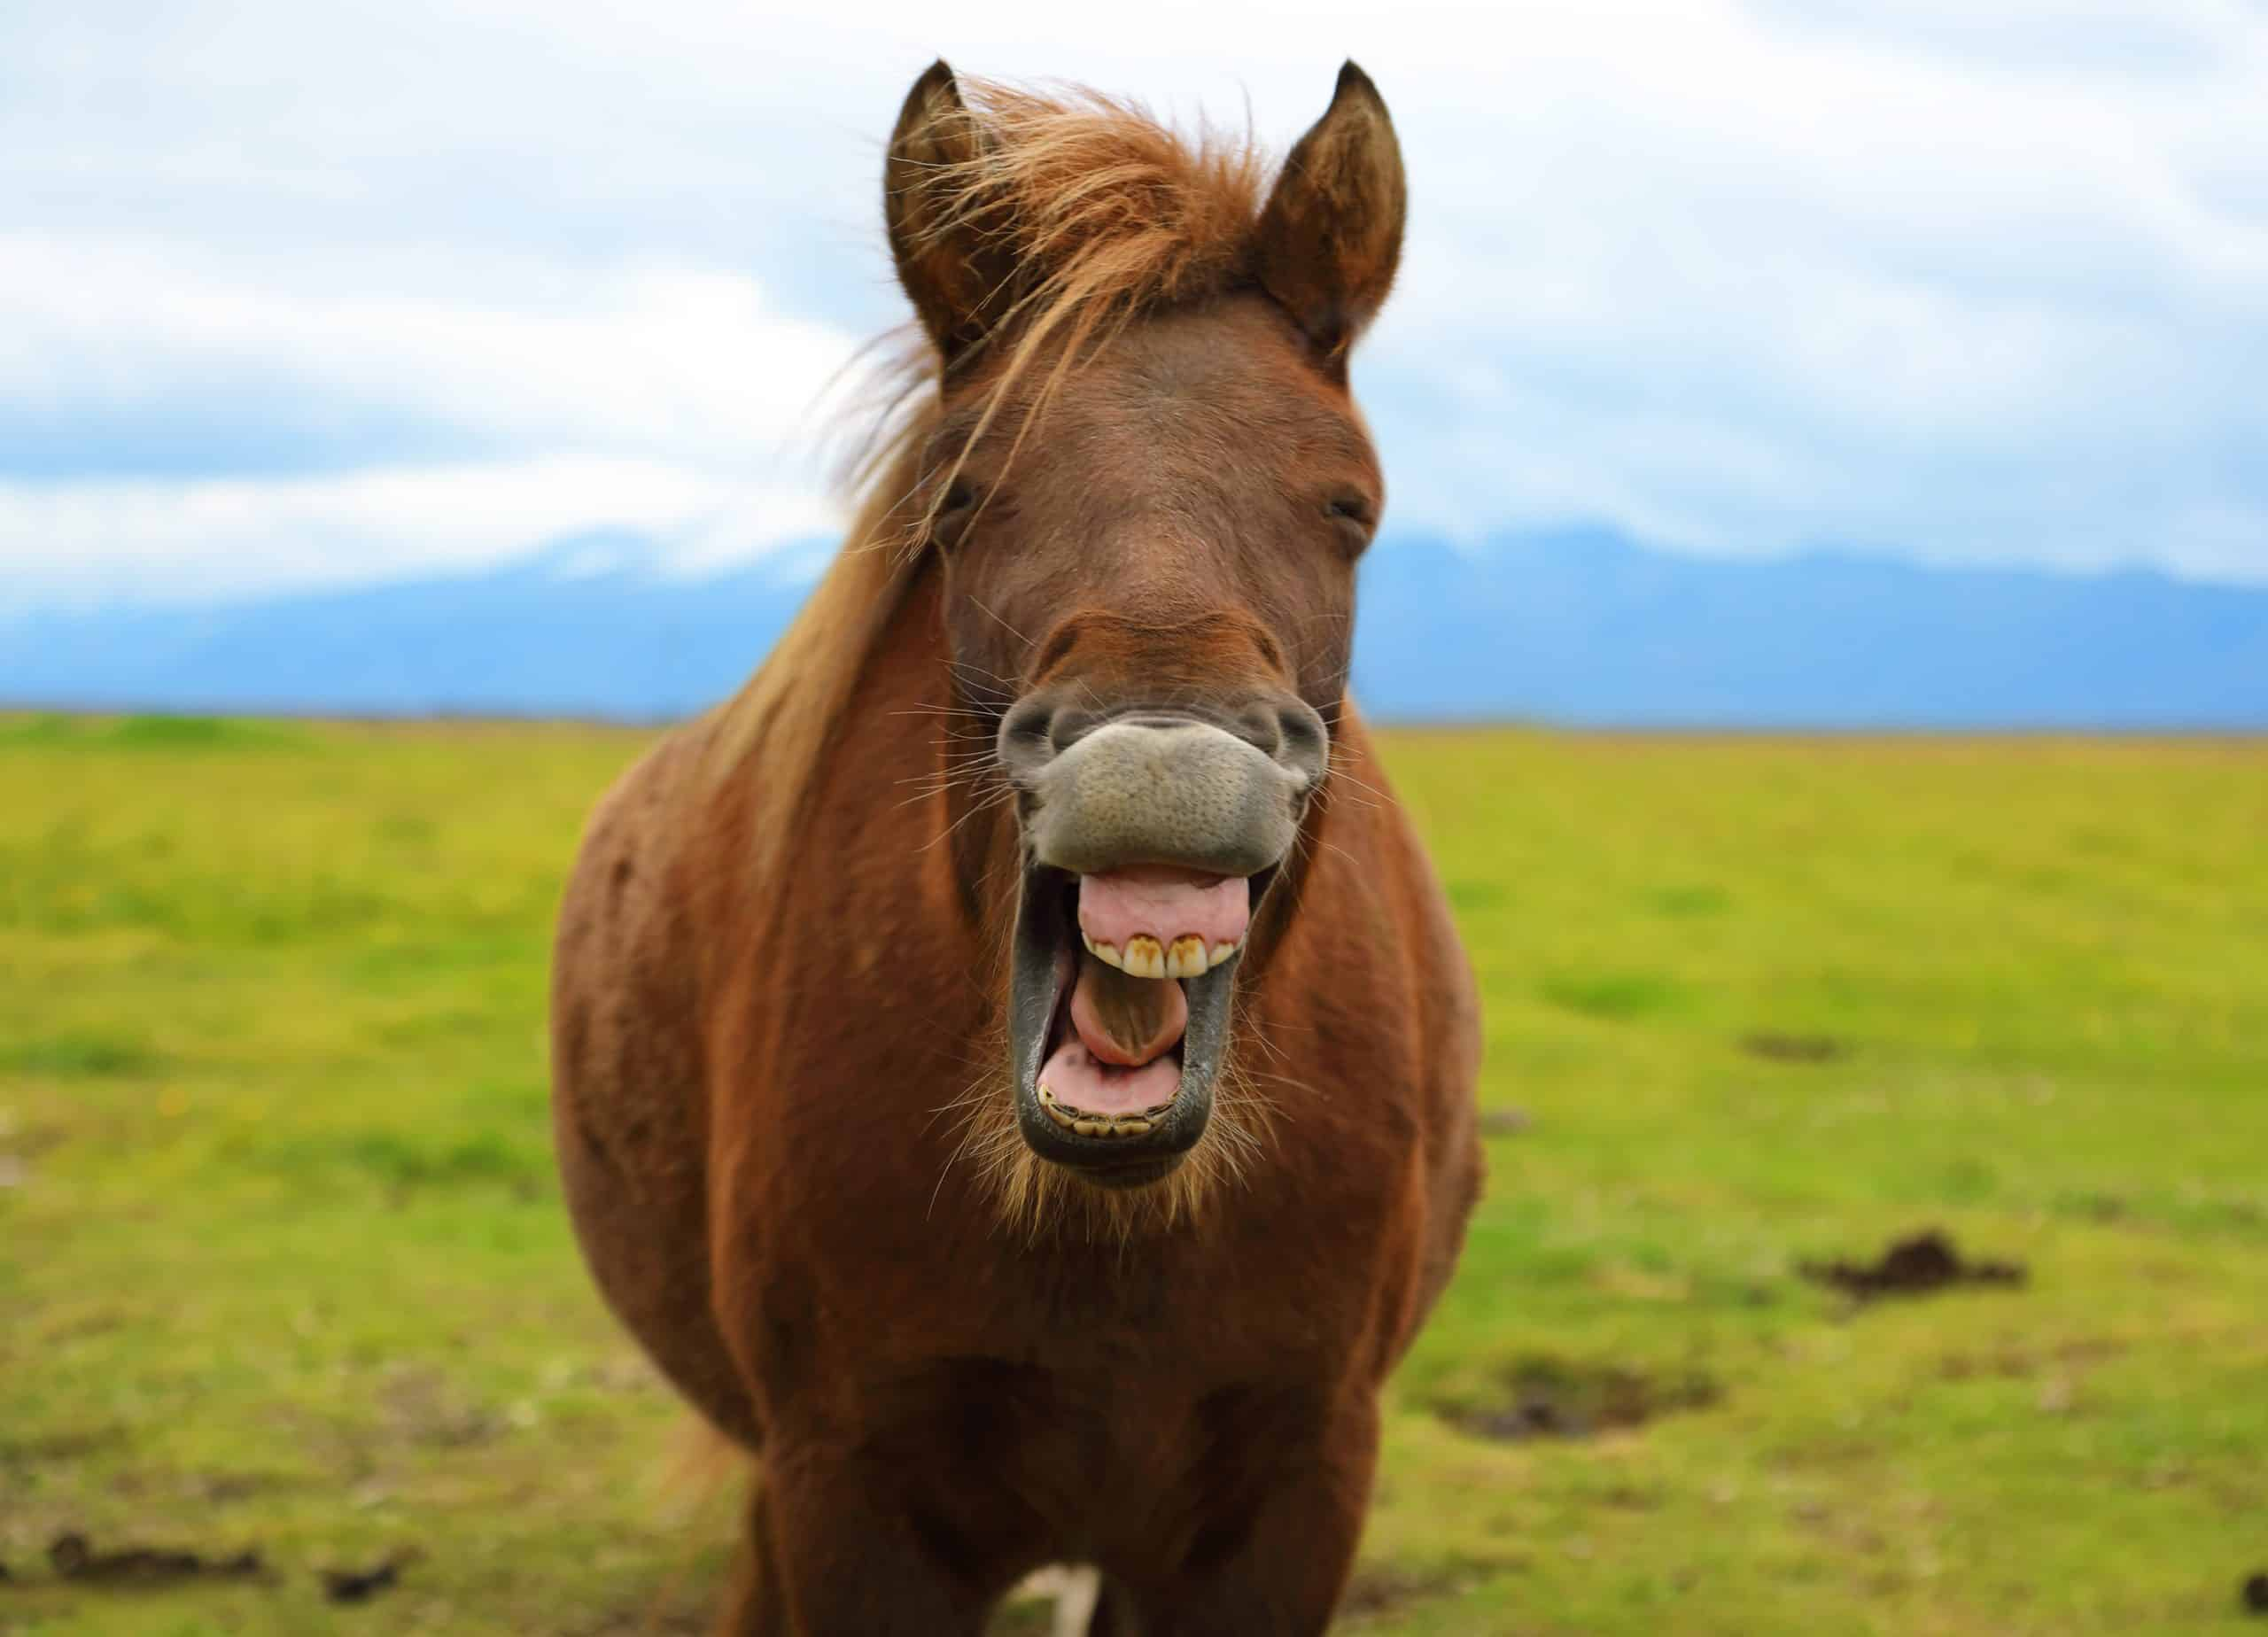 7 Important Things You Should Know About Horse Teeth